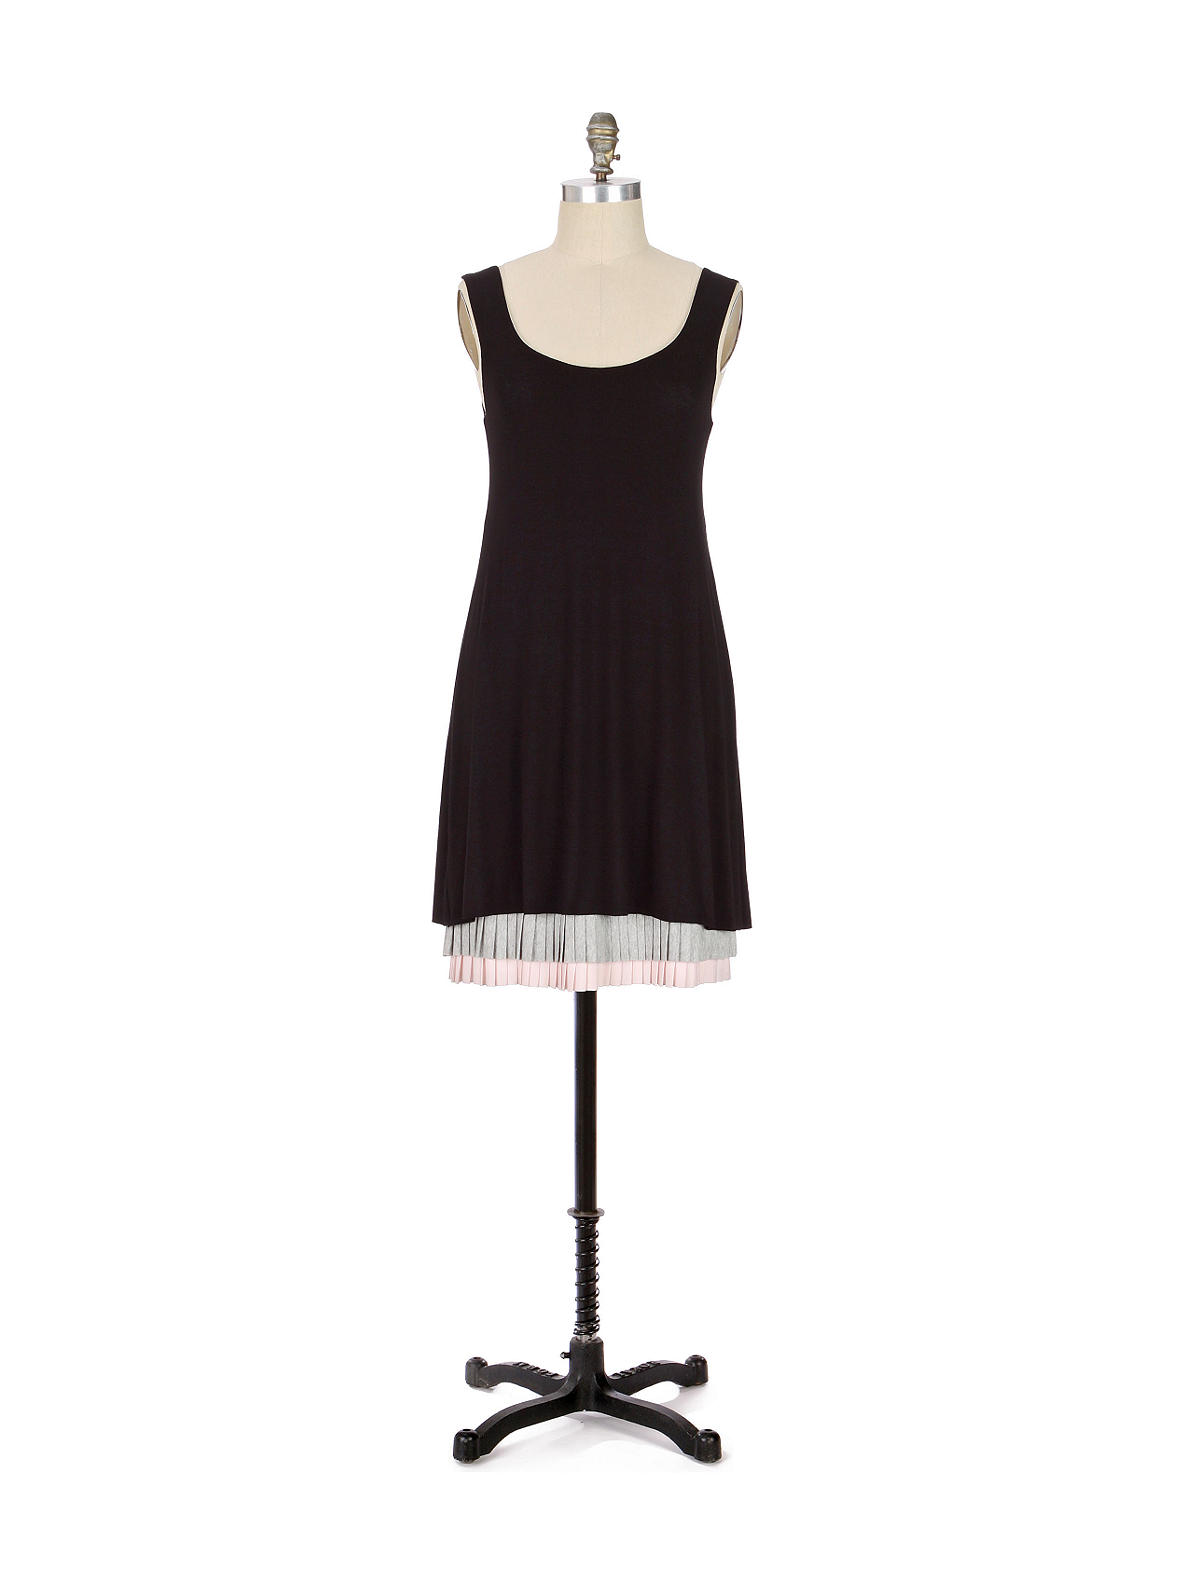 Bailey 44 - Neo-Neapolitan Dress - Anthropologie.com :  pink heather grey womens pleats